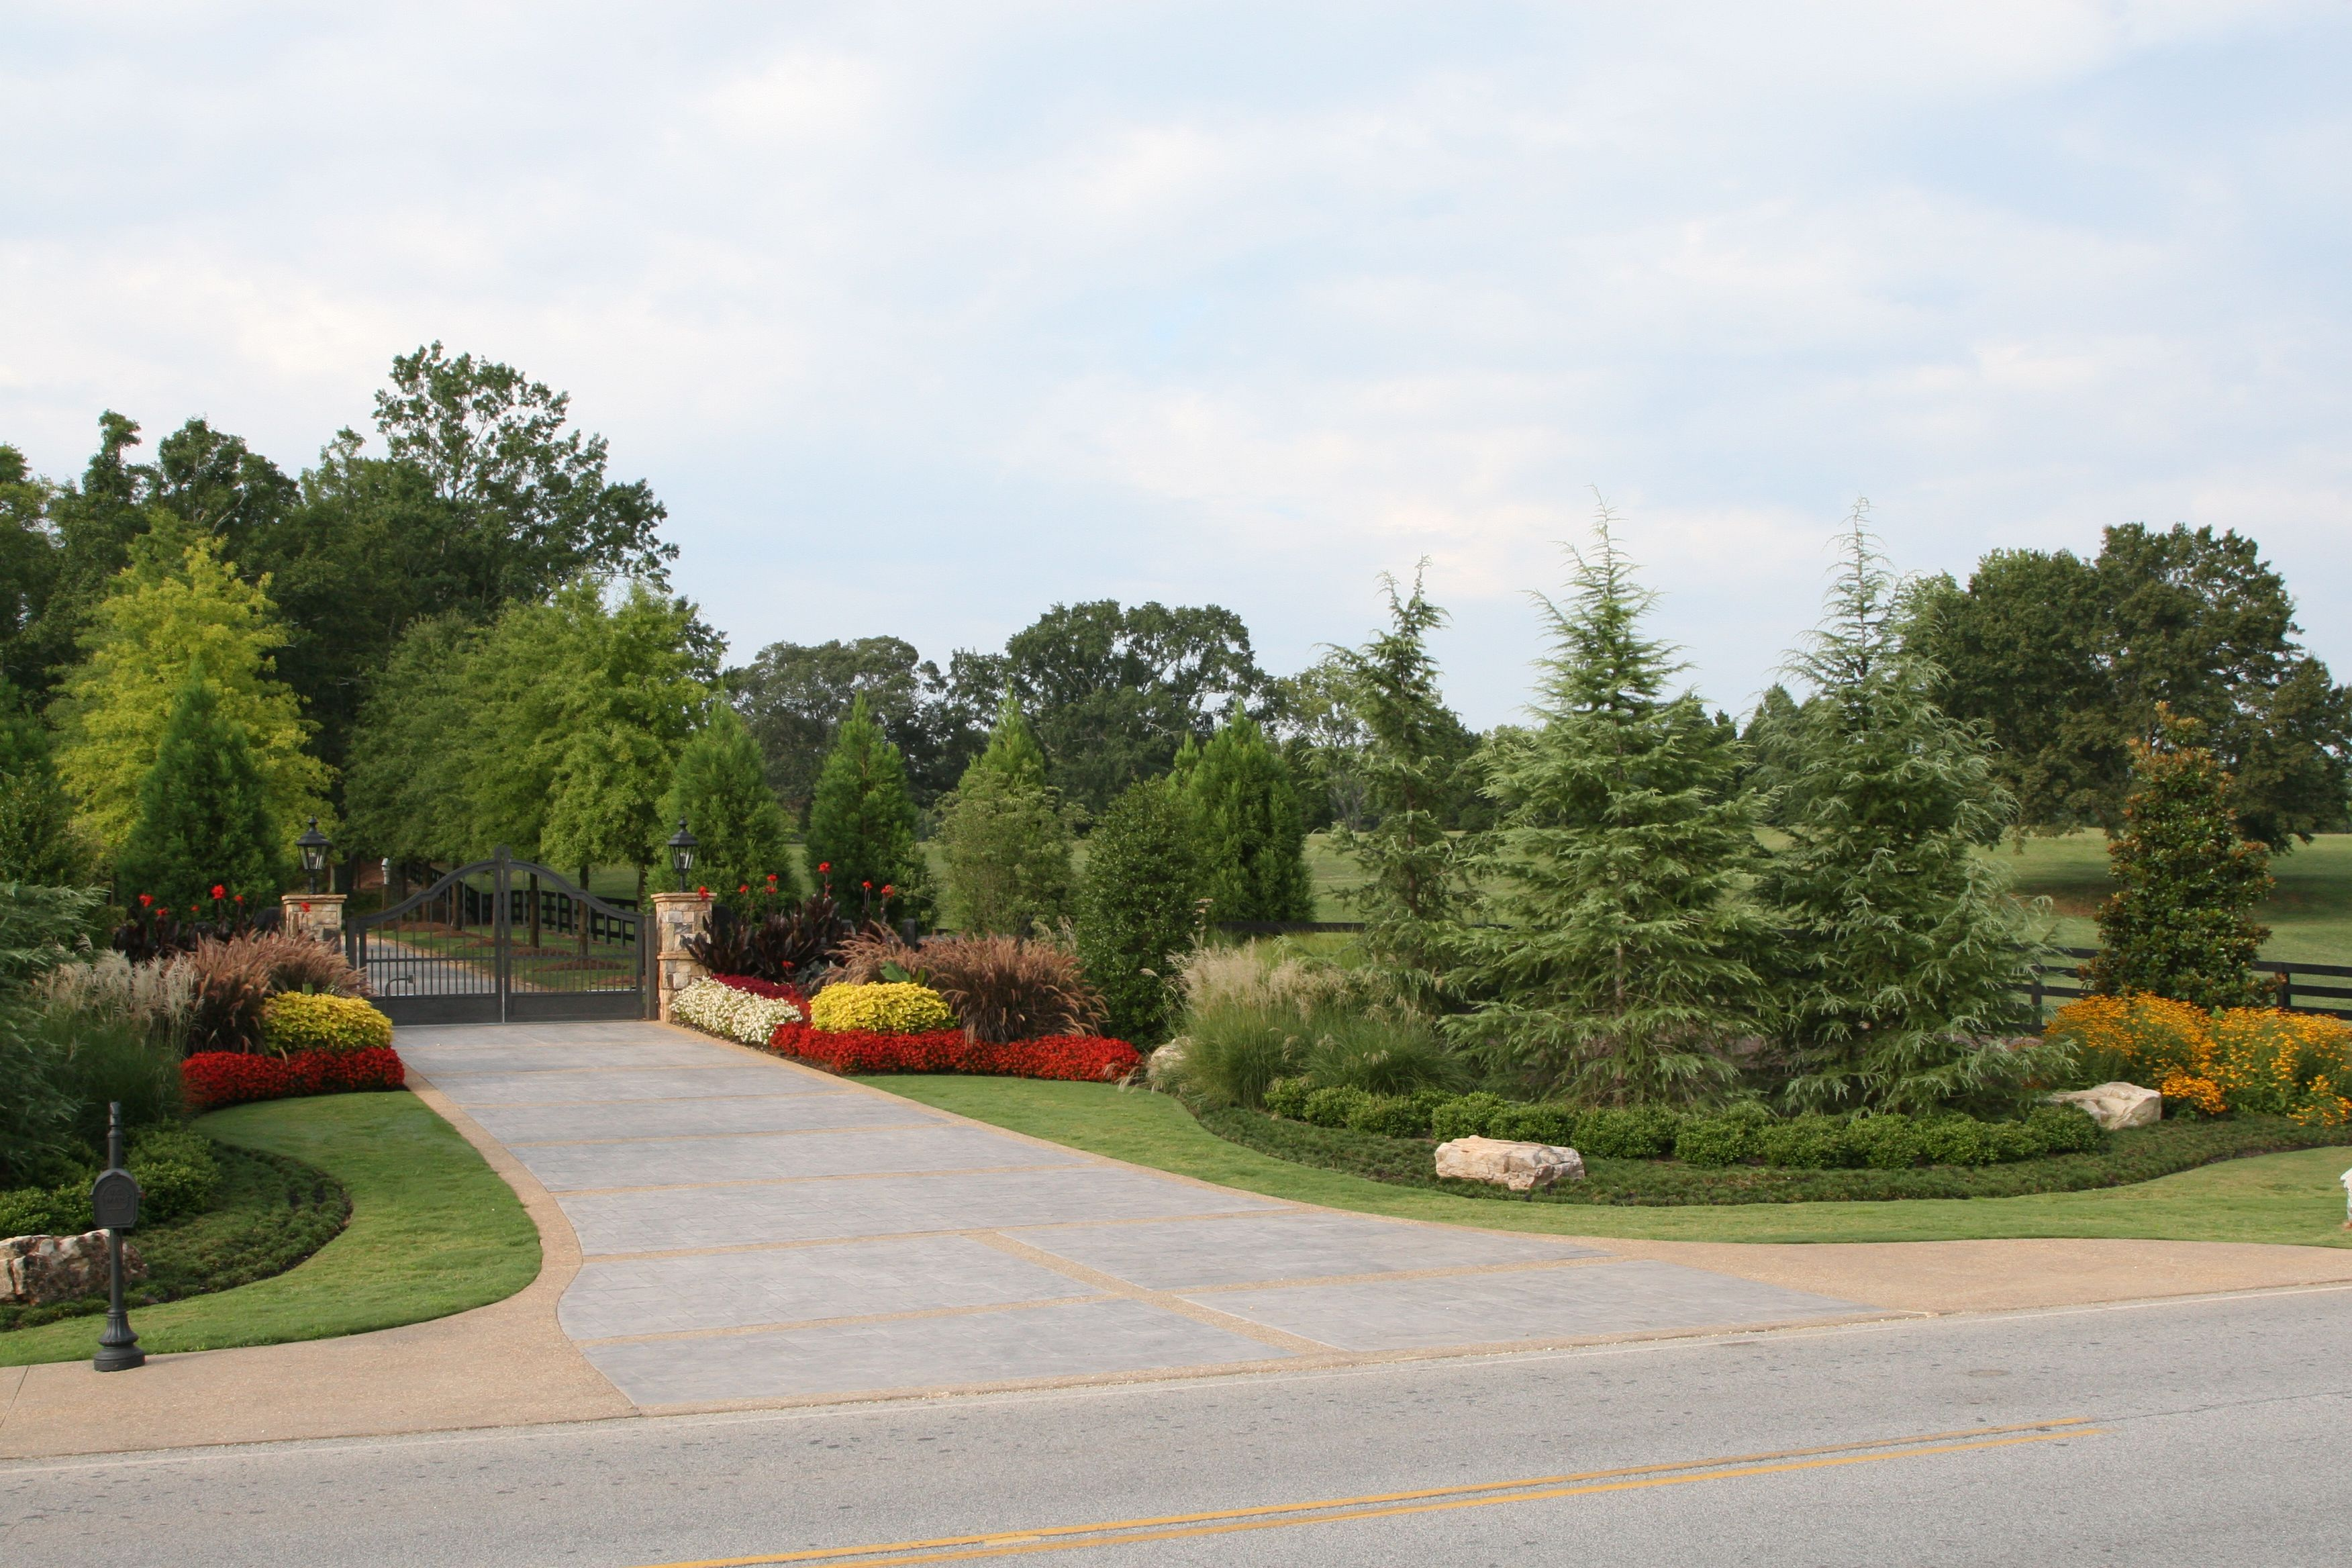 Pin By Cheshire Woods On Driveway Gate Driveway Entrance Landscaping Driveway Entrance Driveway Landscaping